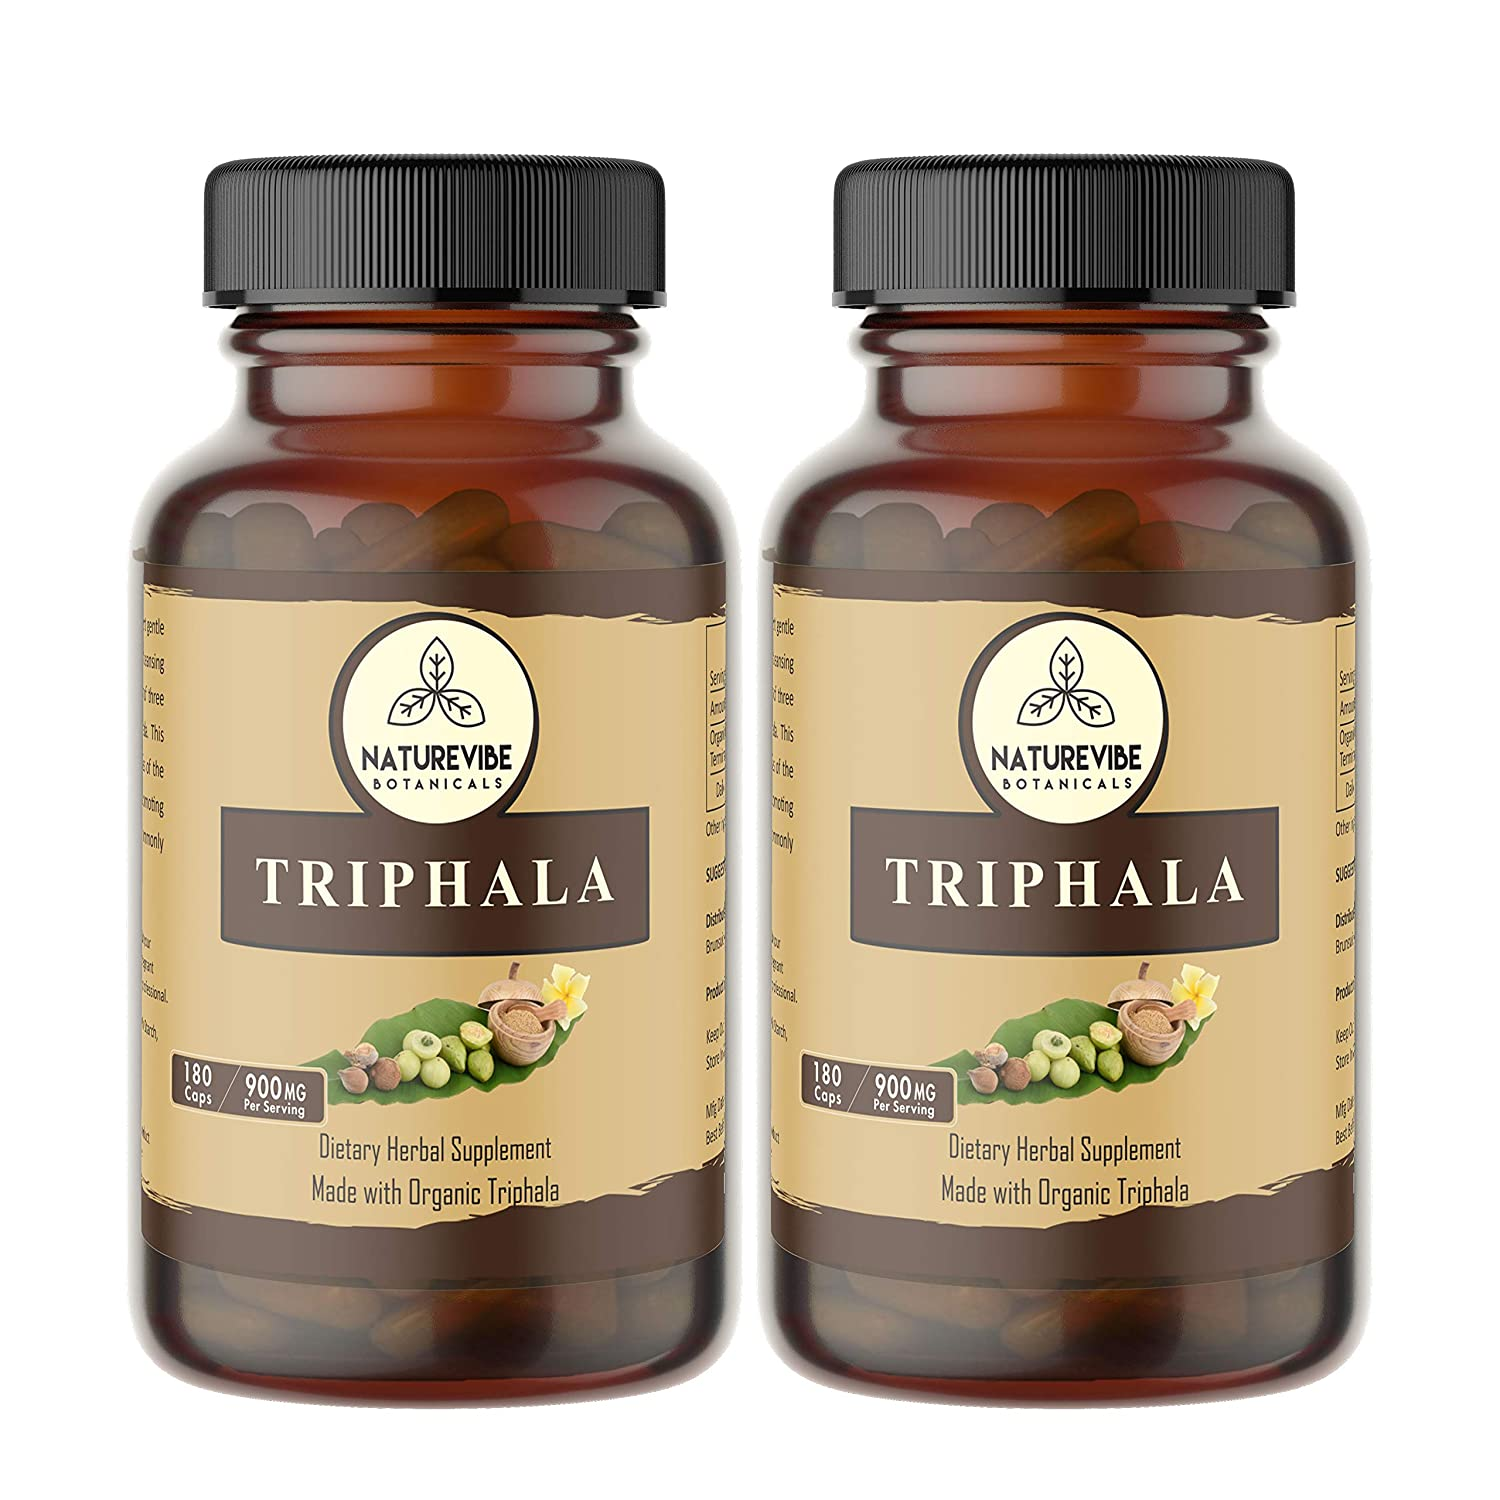 360 Capsules Organic Triphala 100 Organic Triphala Powder, 900mg Per Serving Veg Capsules 2 Pack of 180 Cap Each